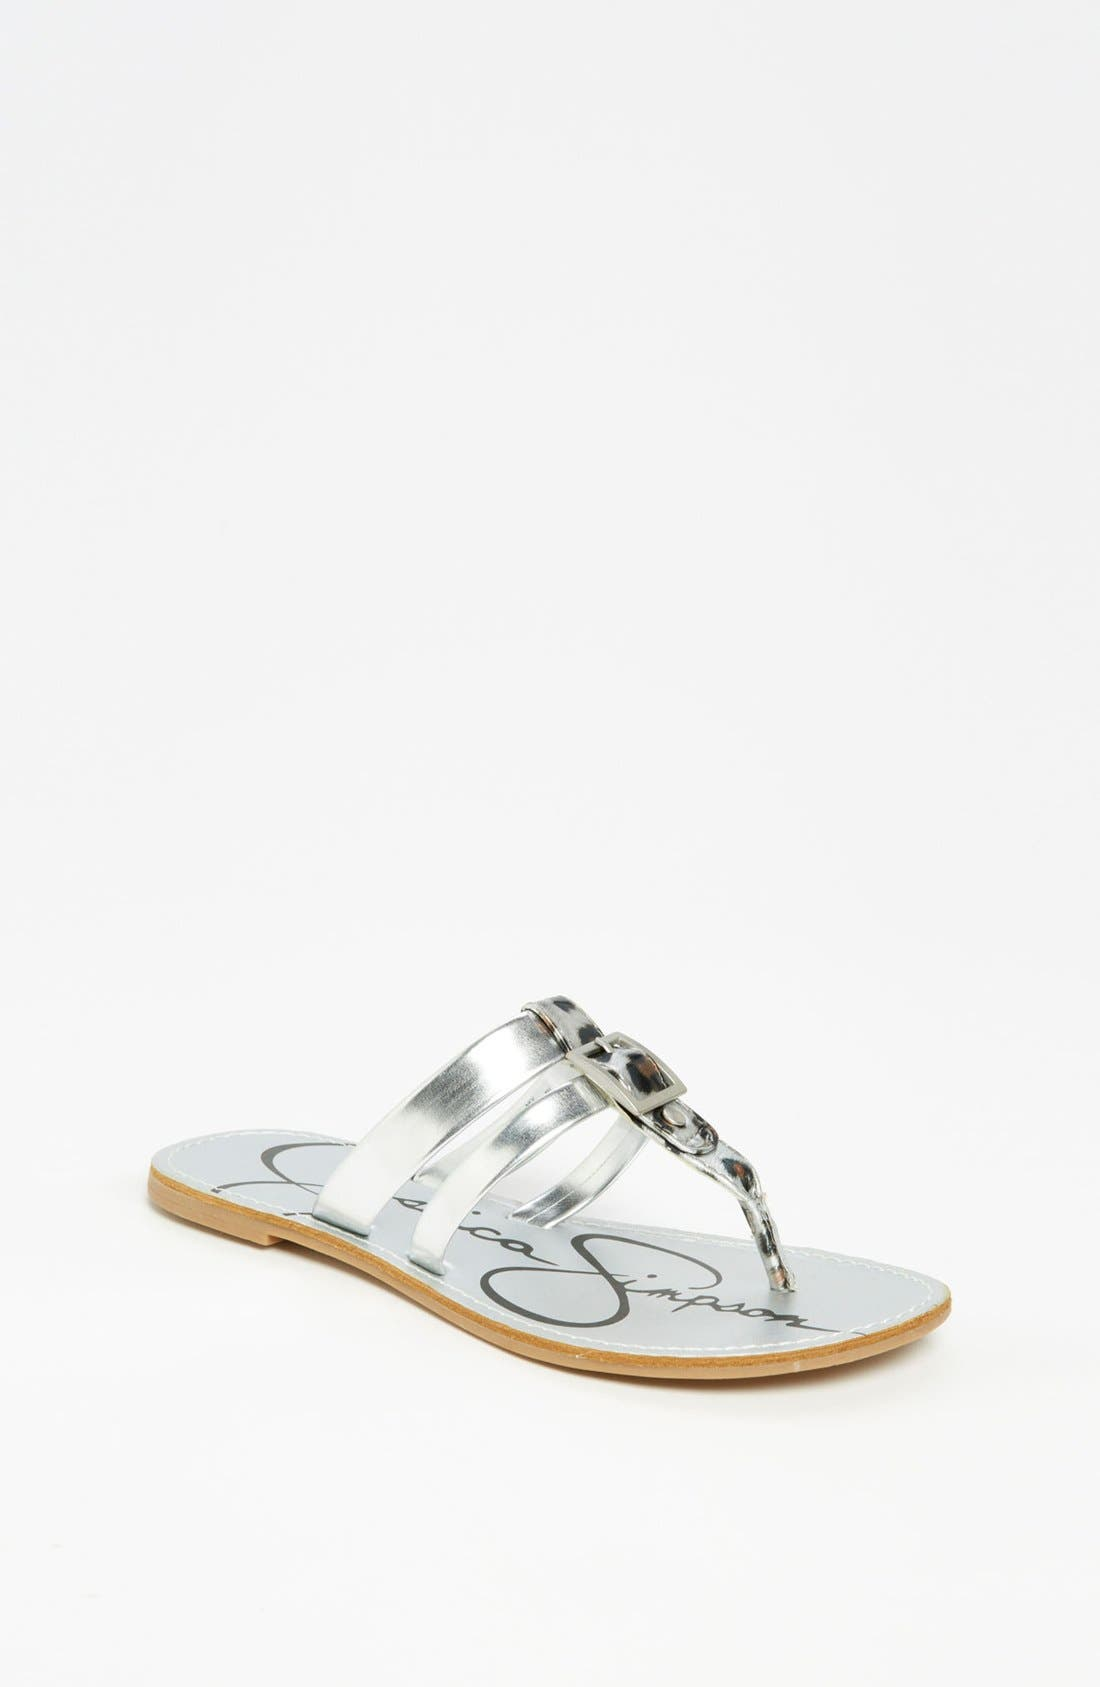 Alternate Image 1 Selected - Jessica Simpson 'Nev' Sandal (Toddler, Little Kid & Big Kid)